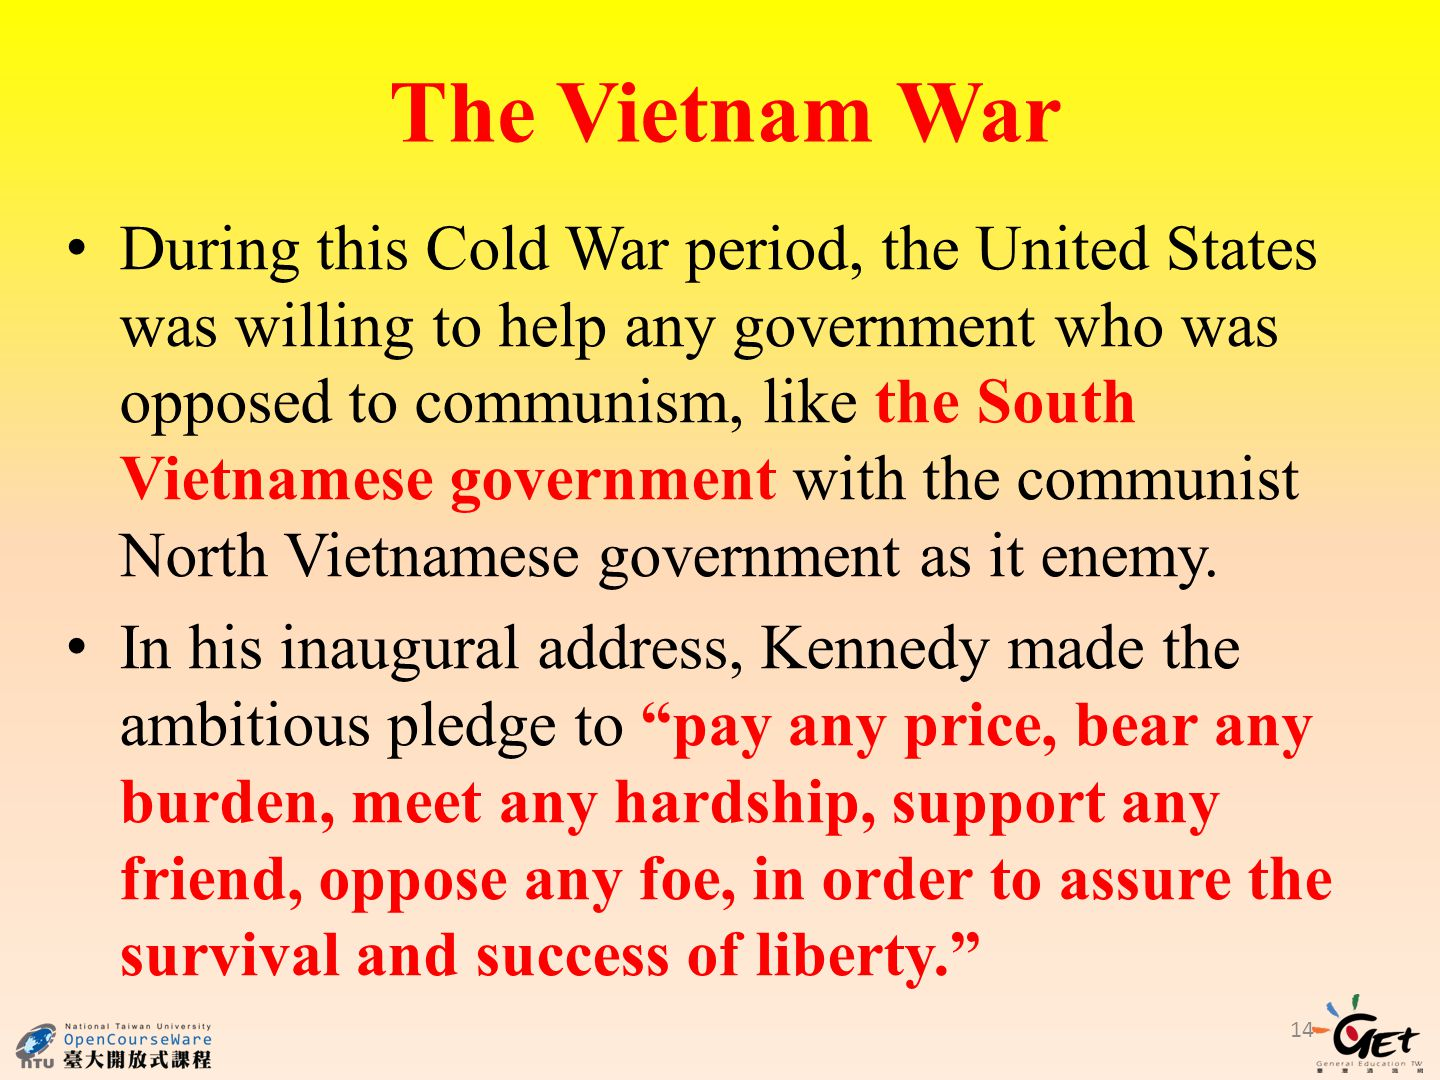 During this Cold War period, the United States was willing to help any government who was opposed to communism, like the South Vietnamese government with the communist North Vietnamese government as it enemy.